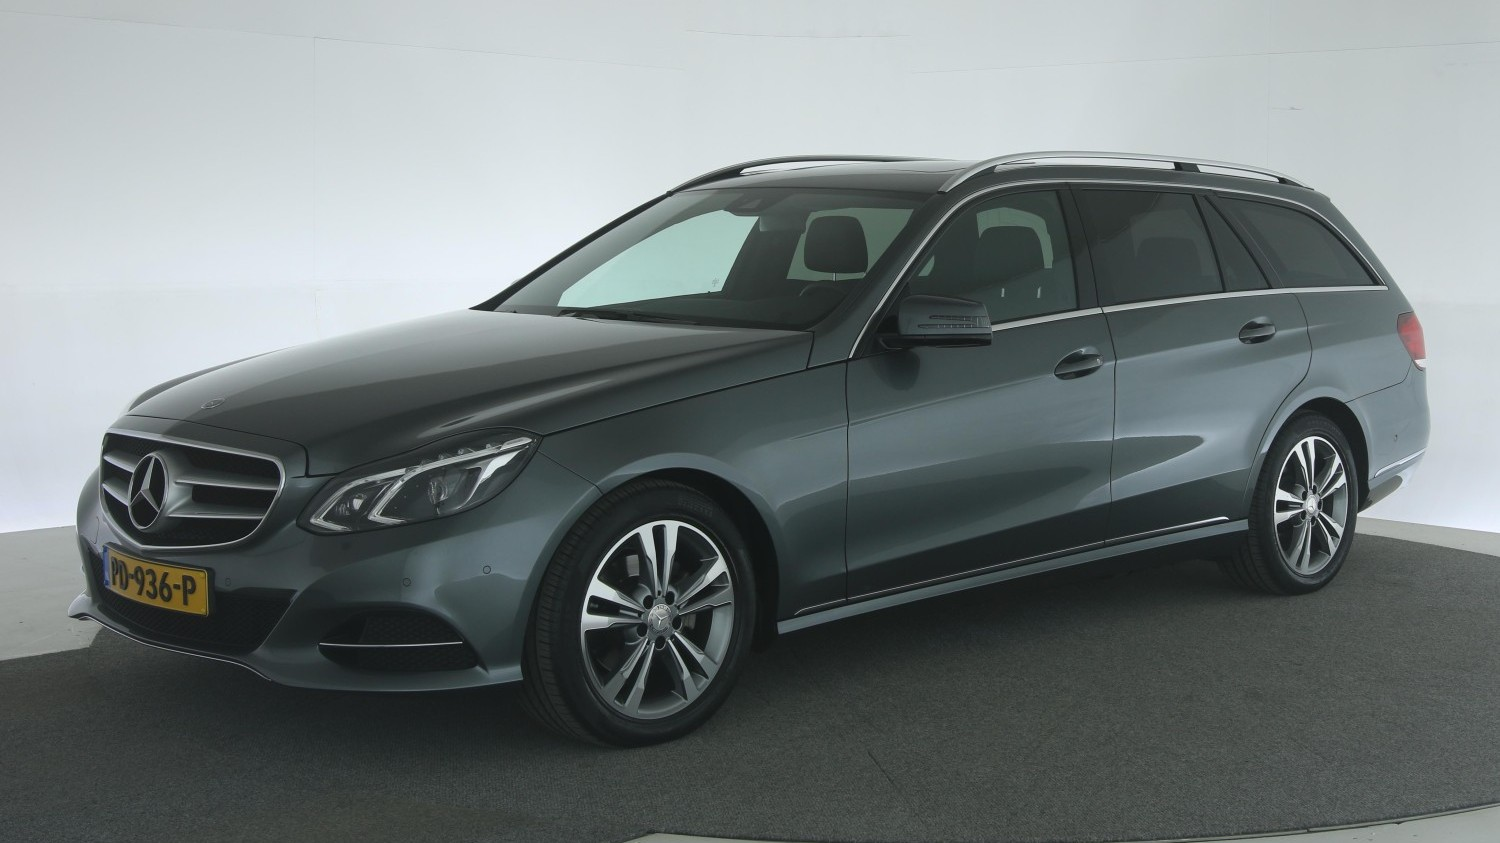 Mercedes-Benz E-Klasse Station 2016 PD-936-P 1